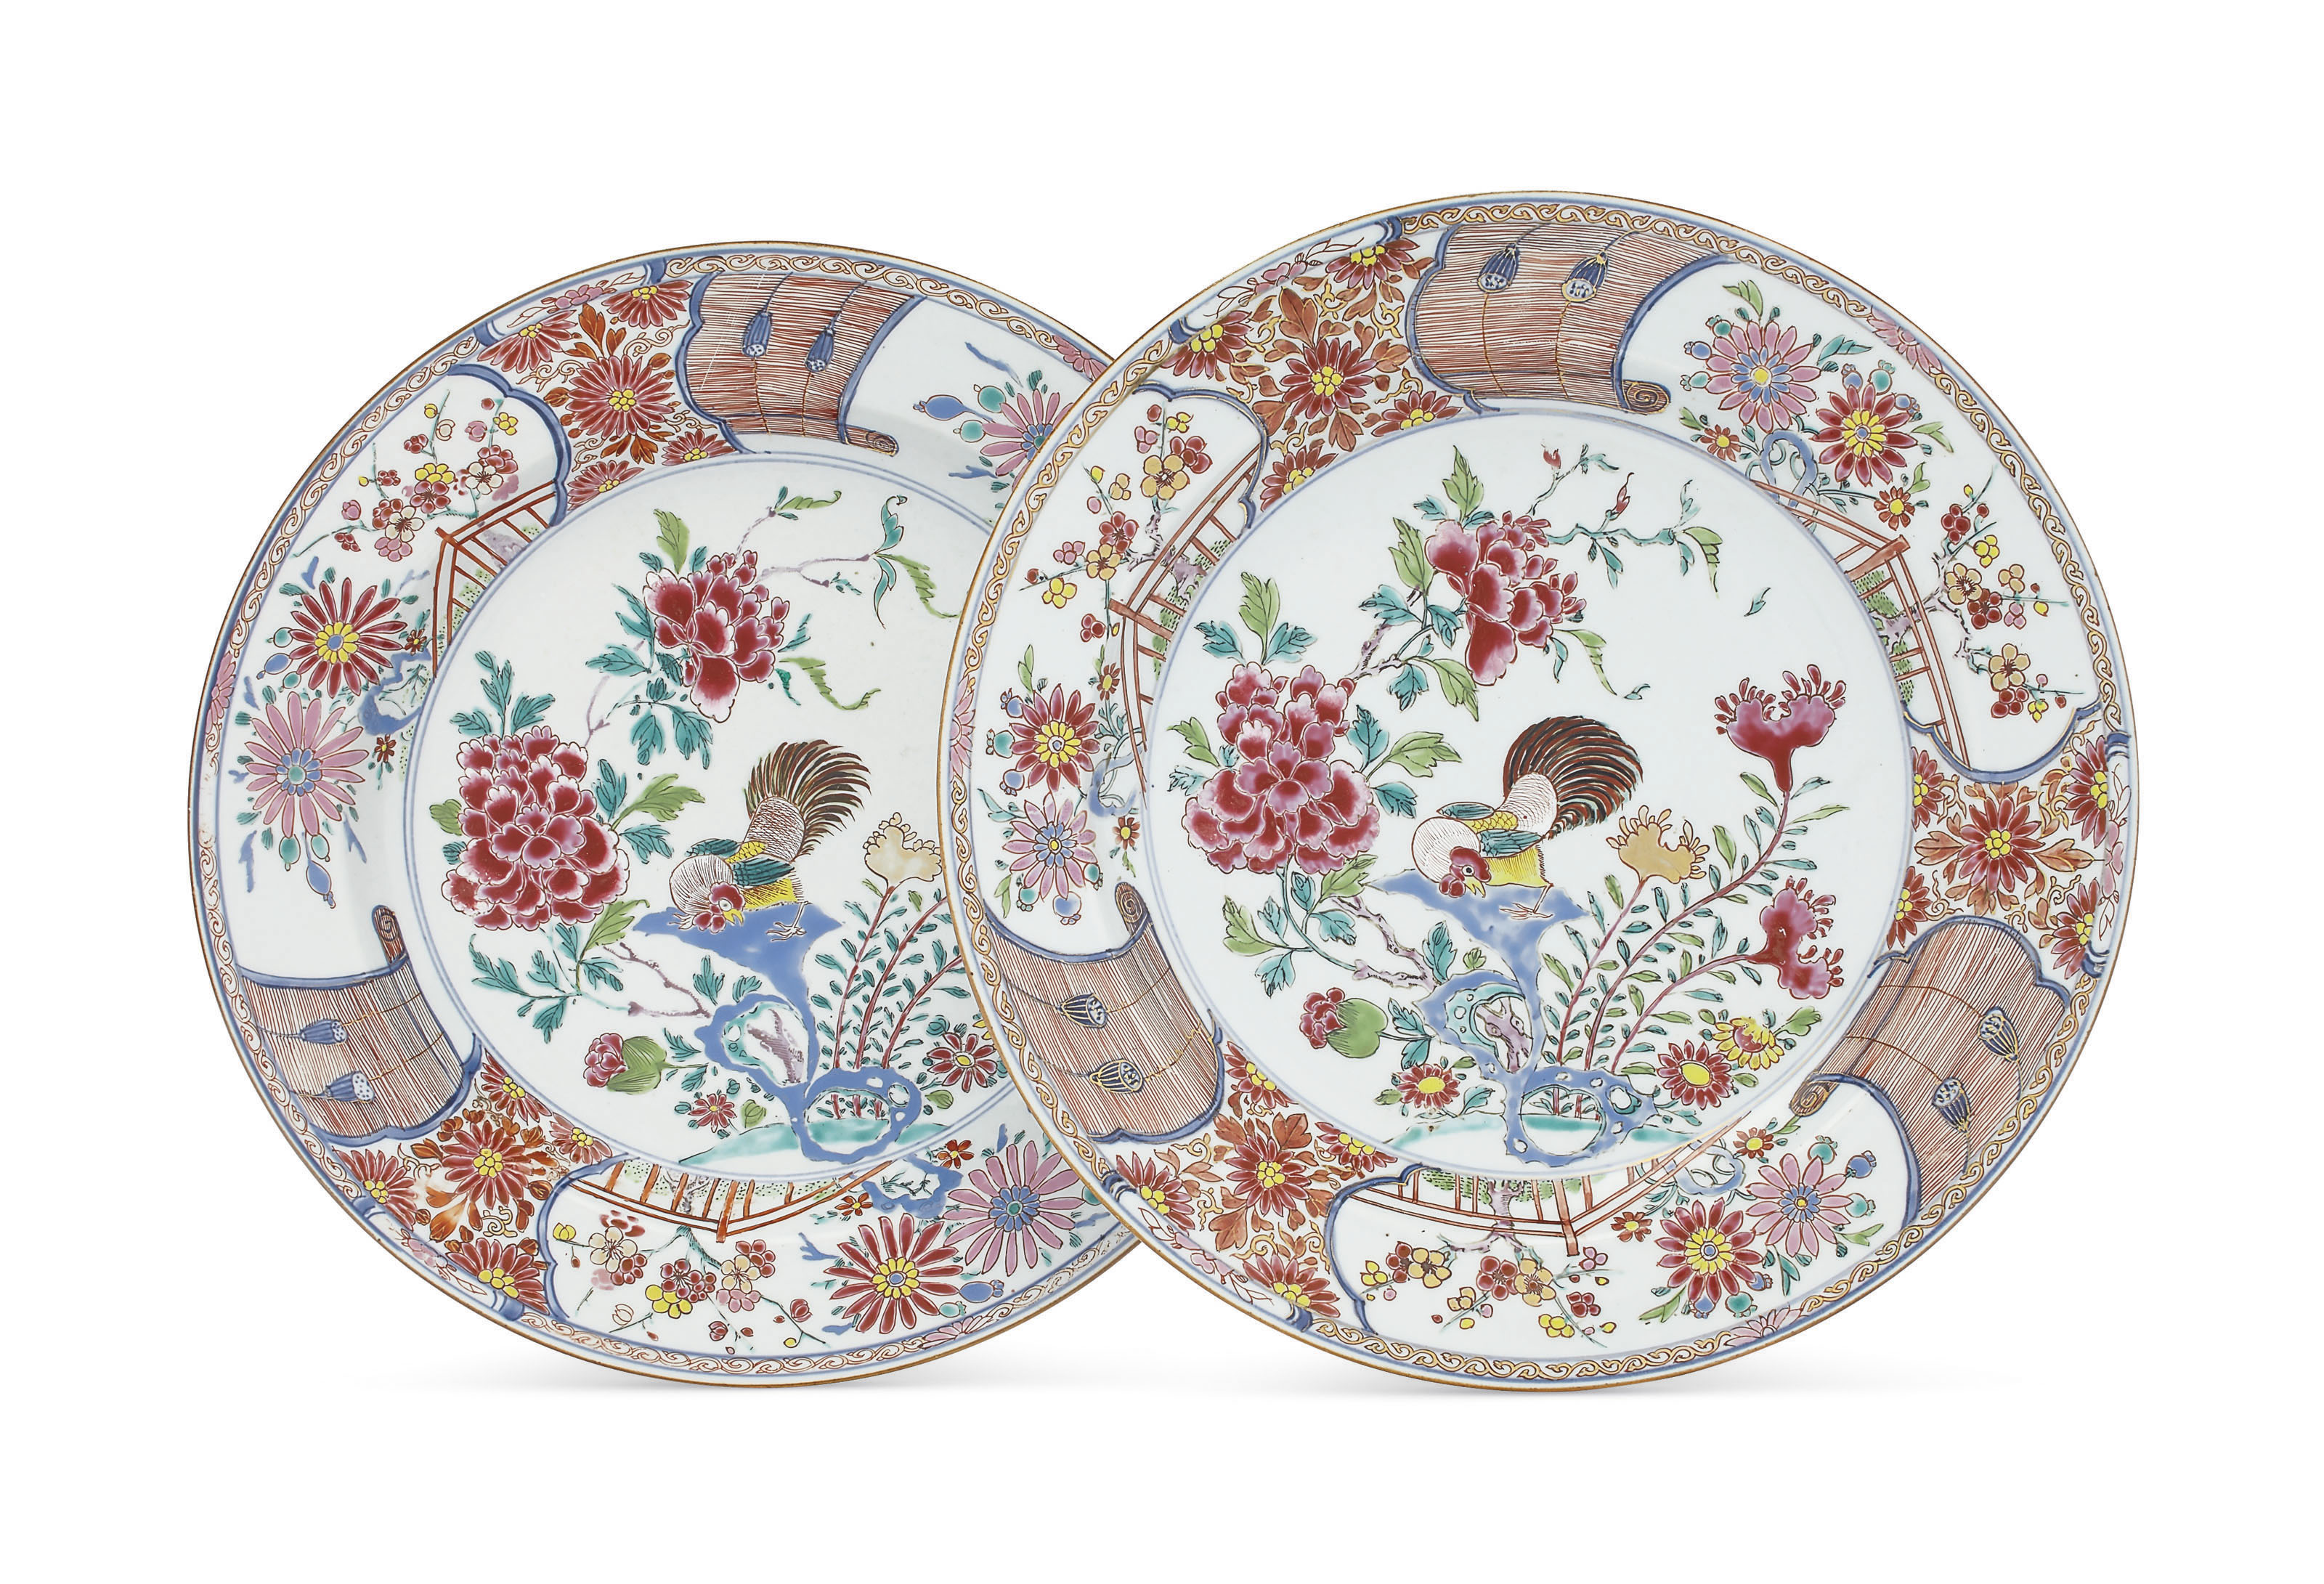 A LARGE PAIR OF FAMILLE ROSE CHARGERS